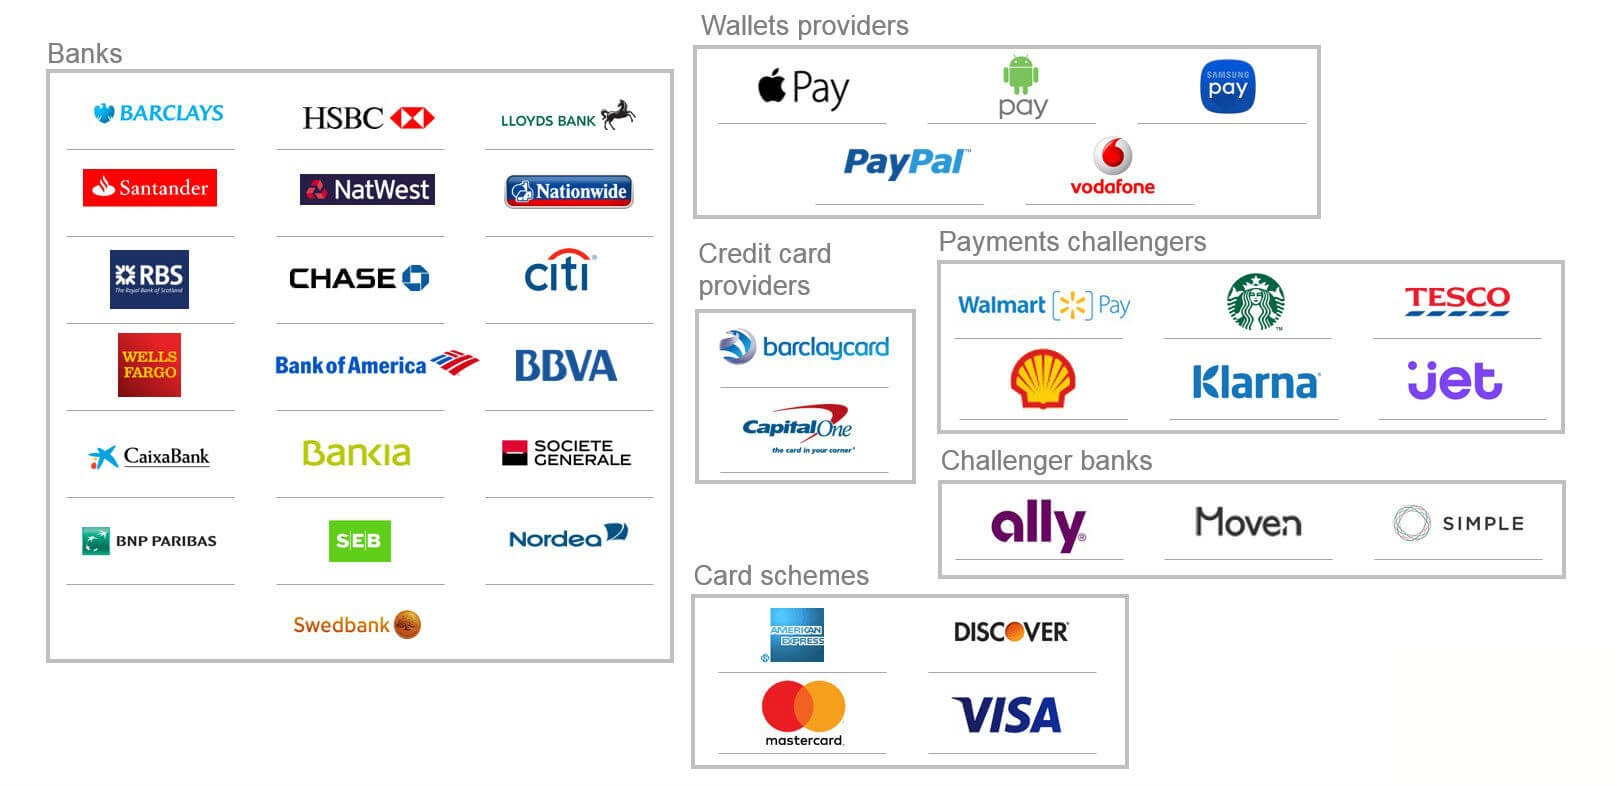 Digital-Wallets-Payments-Providers